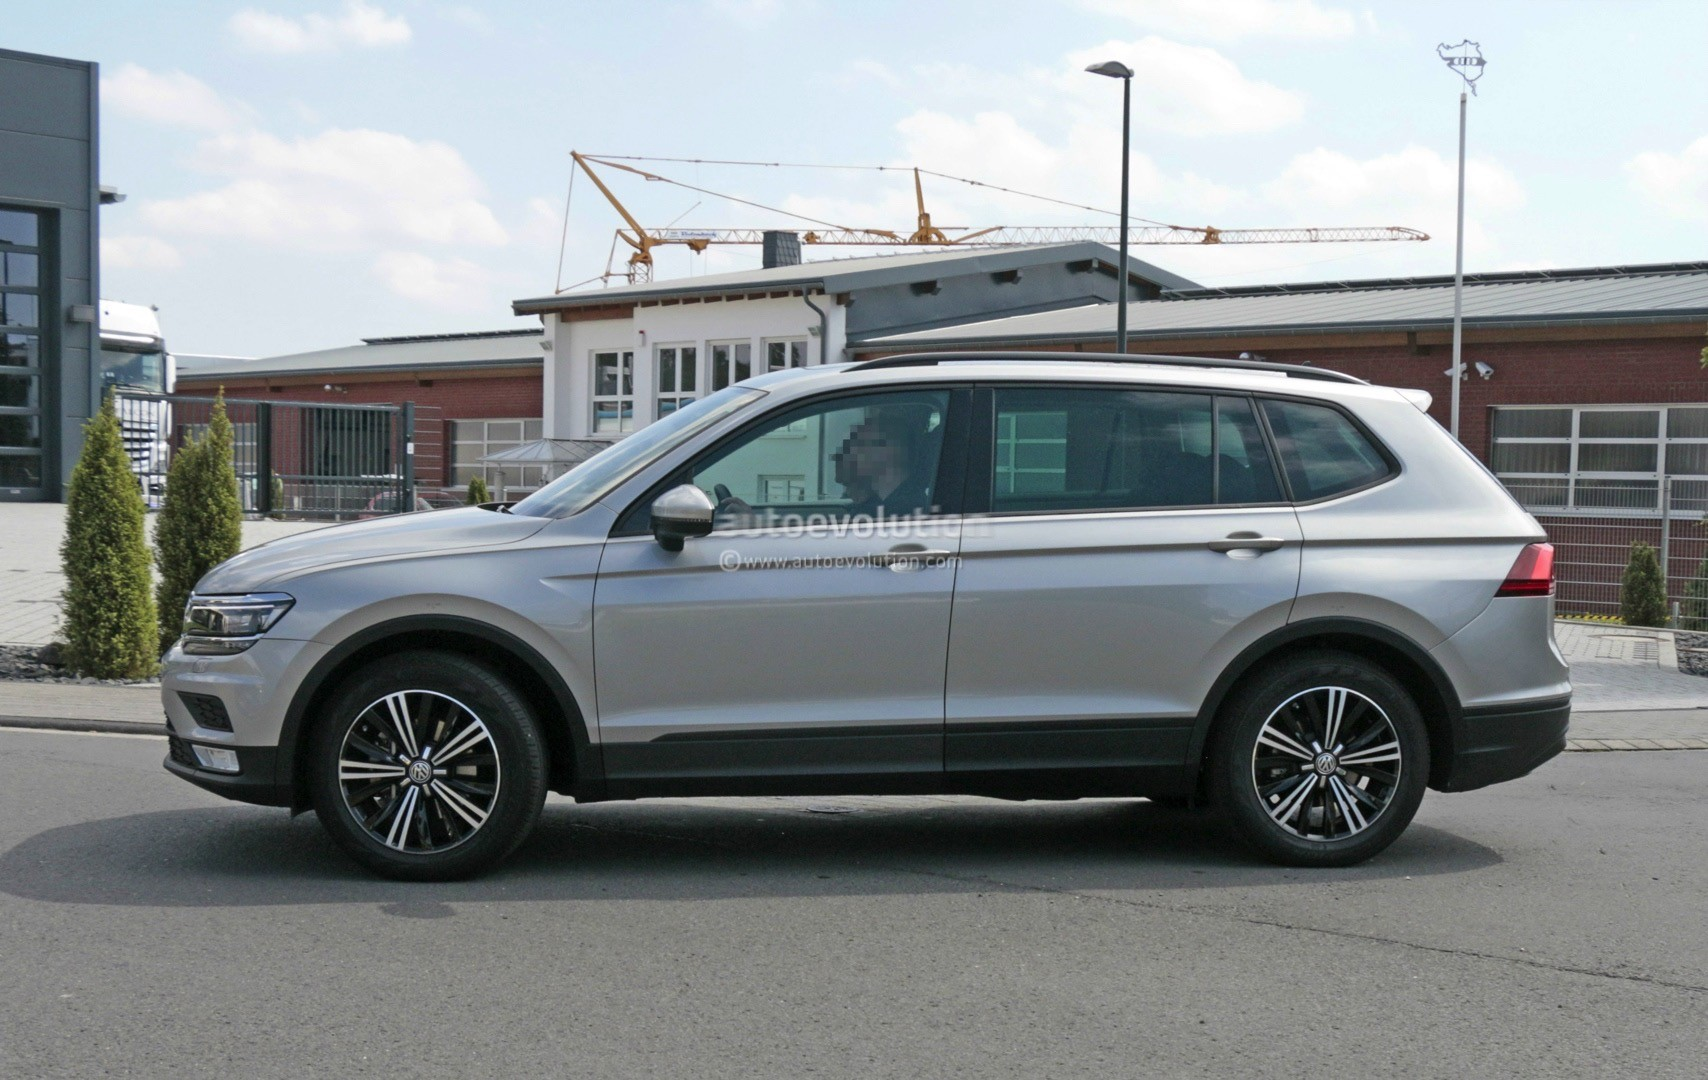 2017 volkswagen tiguan xl spied without camouflage looks exactly as expected autoevolution. Black Bedroom Furniture Sets. Home Design Ideas